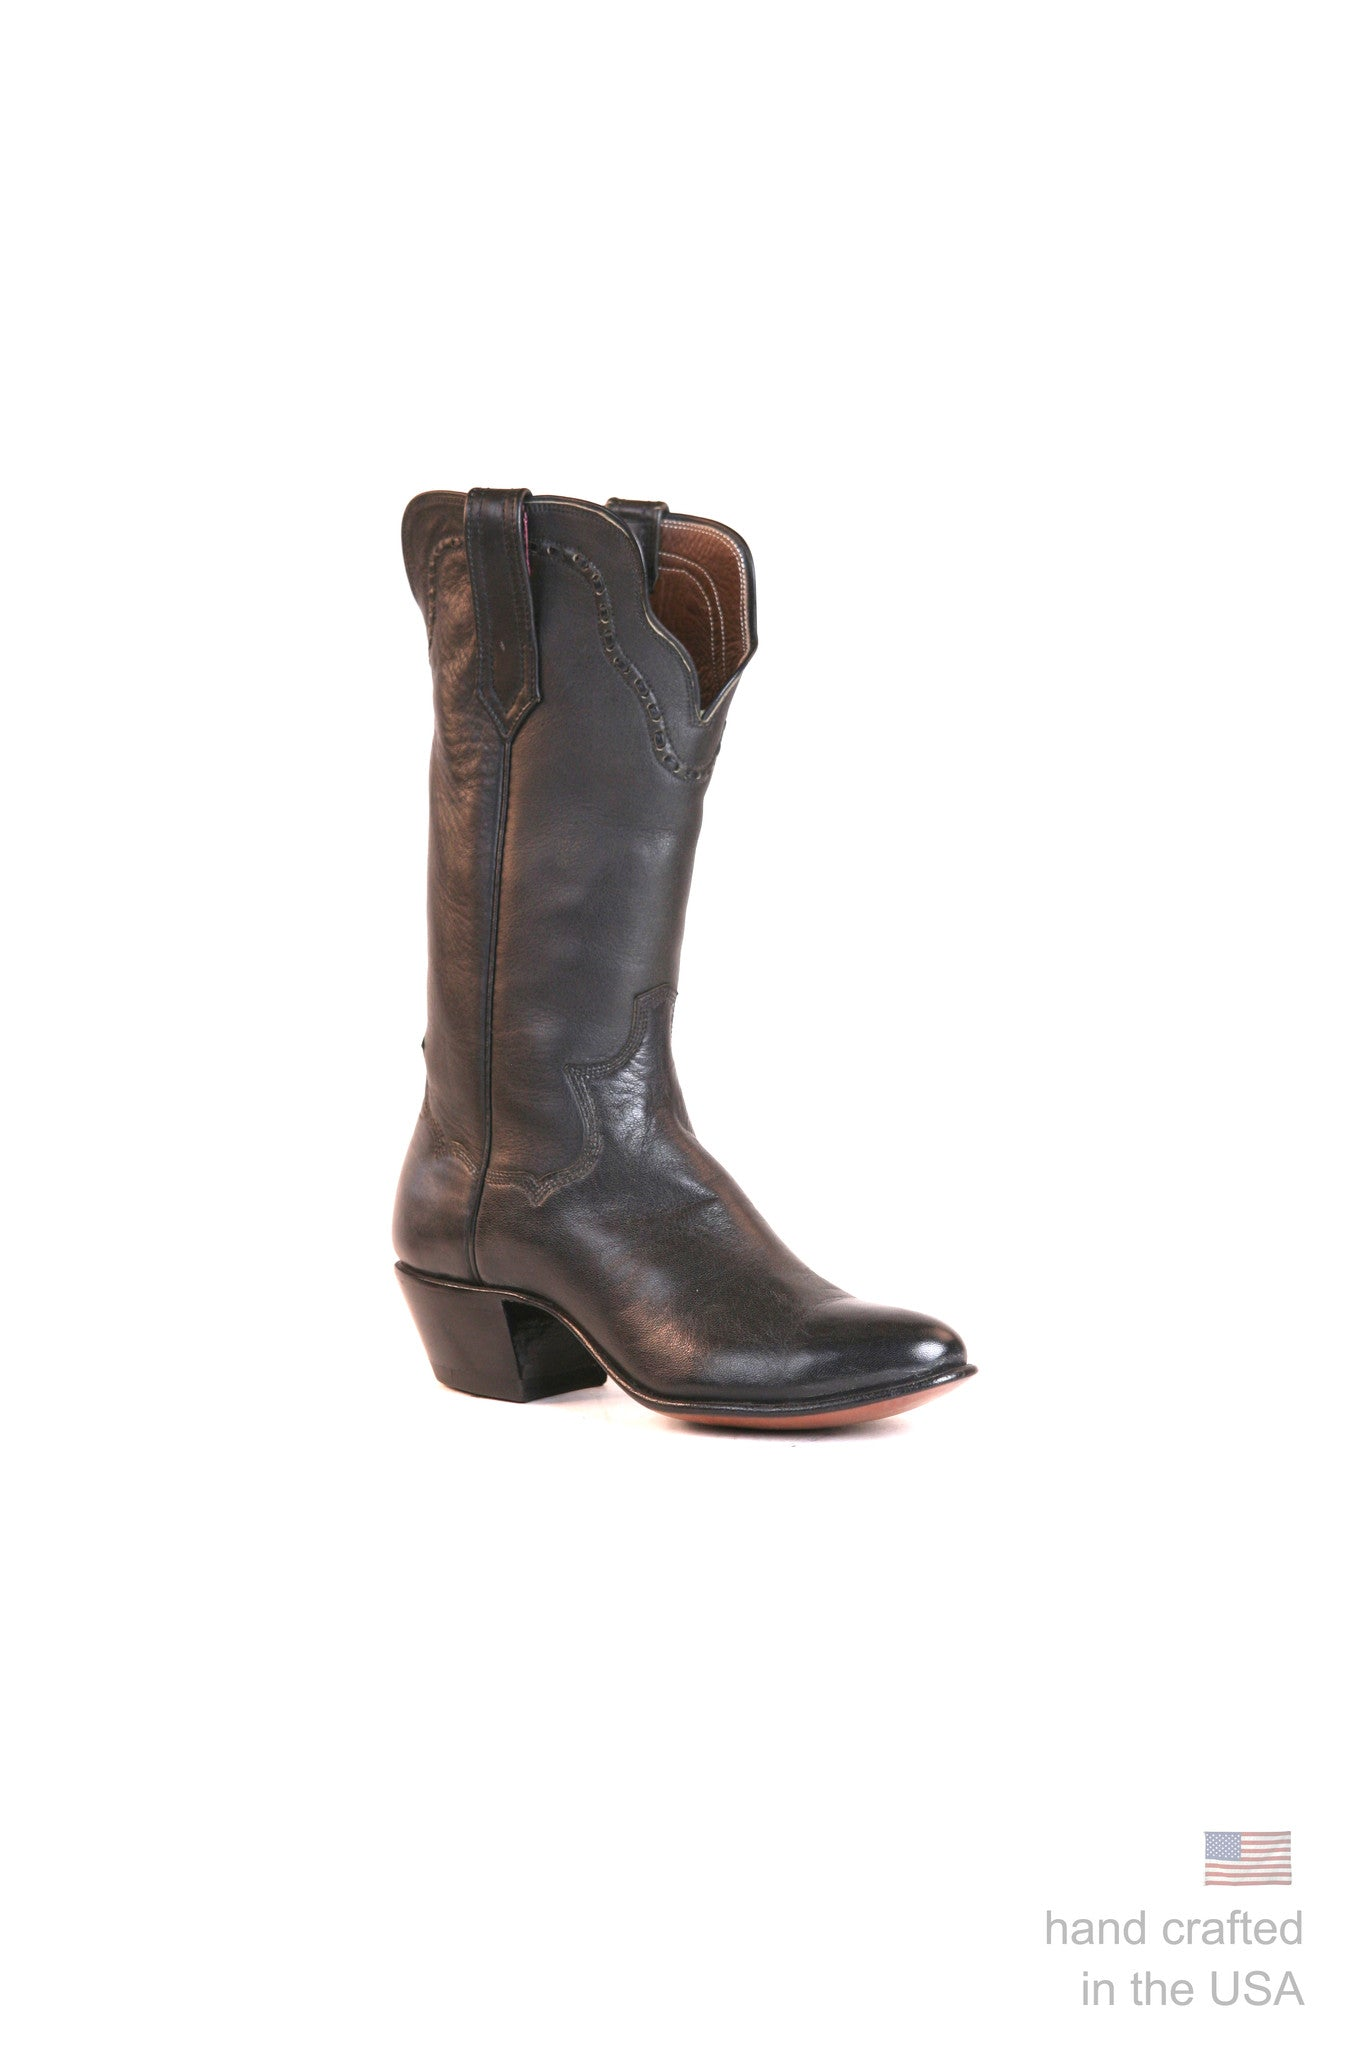 Singles: Boot 0078: Size 6A